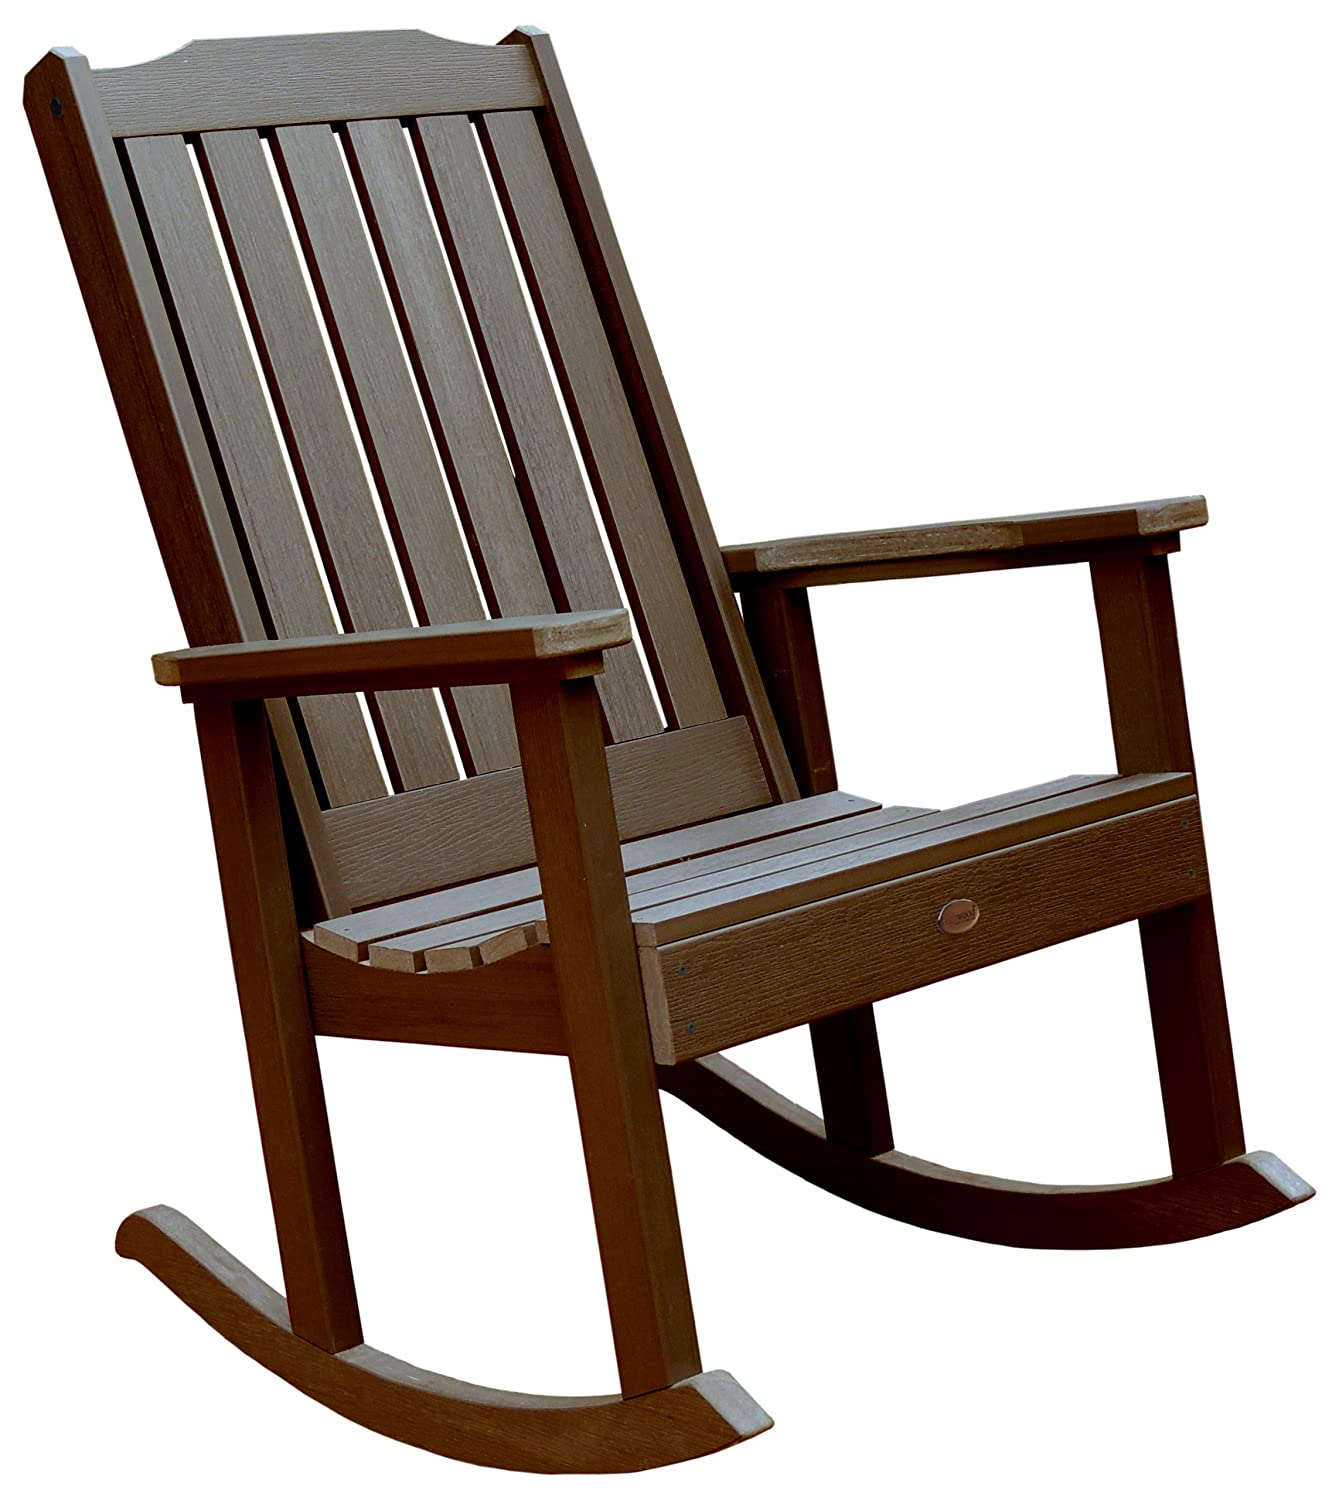 outdoor rocking chairs for heavy people for big and heavy people. Black Bedroom Furniture Sets. Home Design Ideas